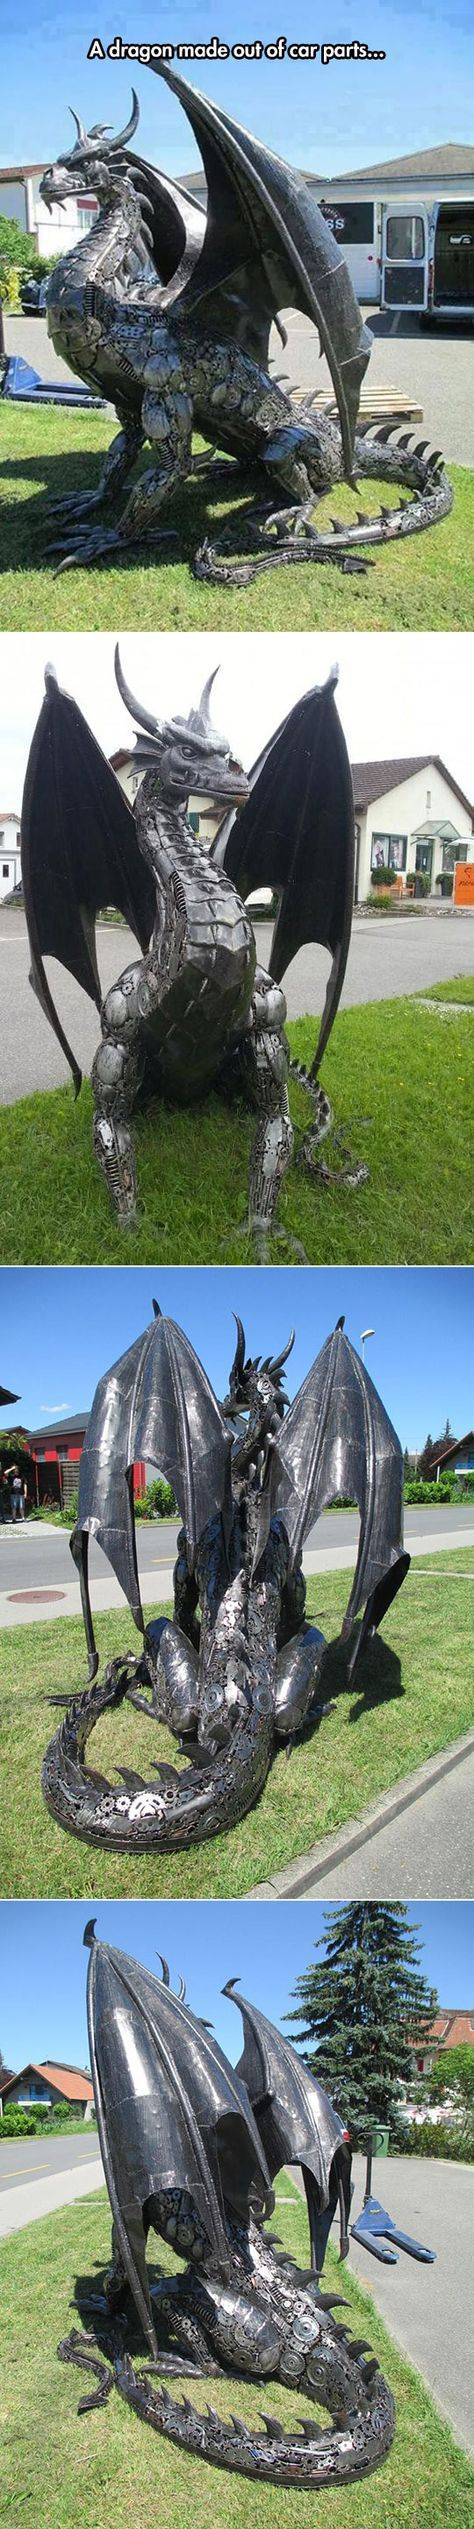 Awesome car part dragon.